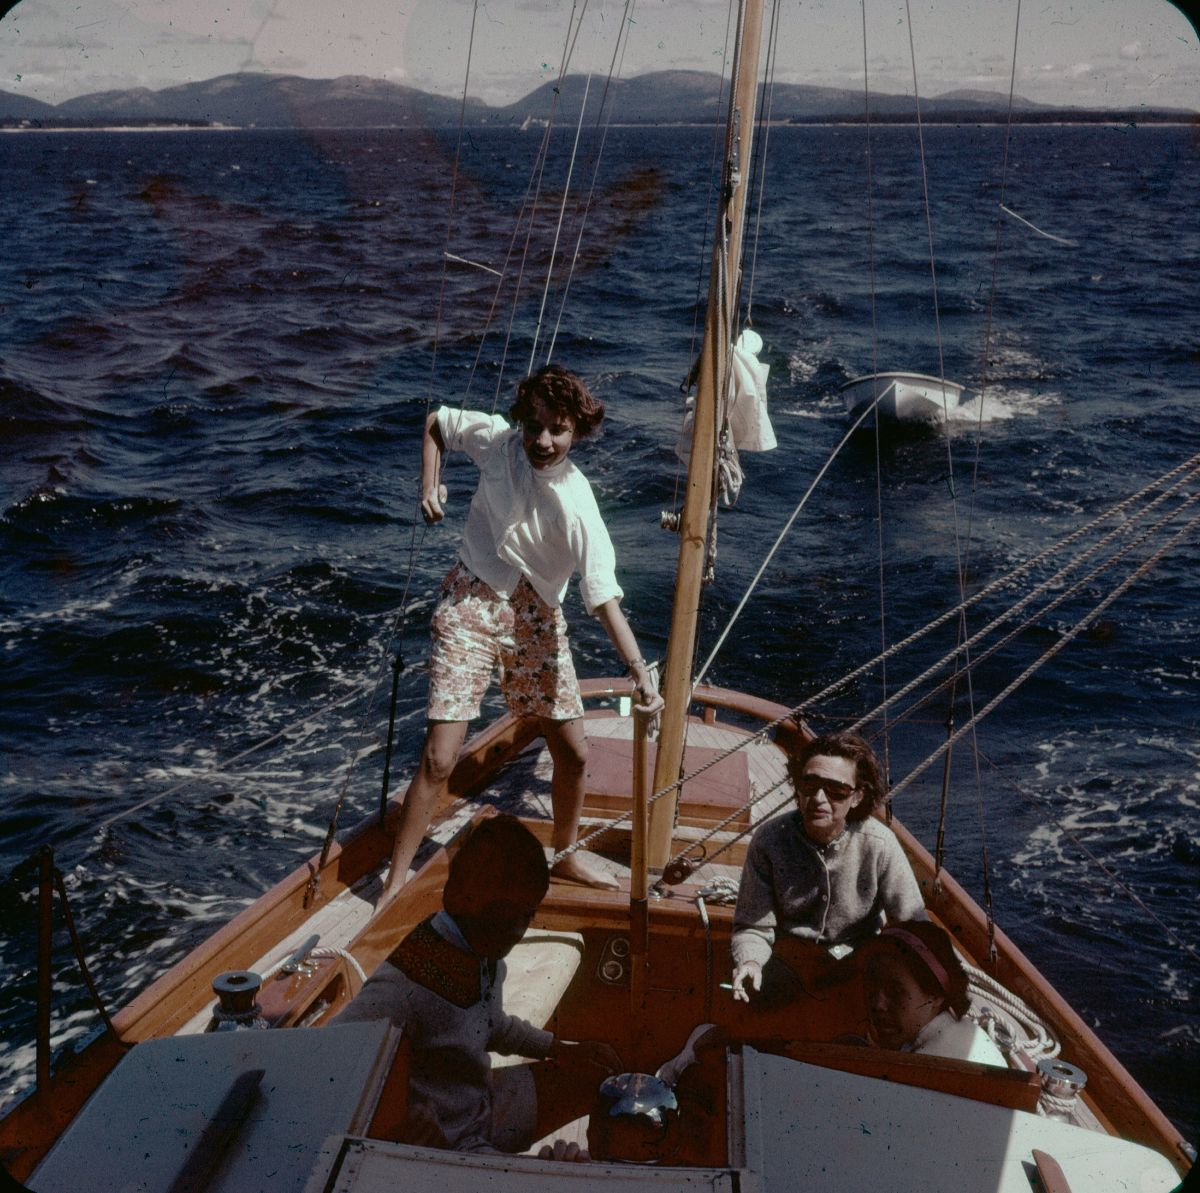 Penelope Hinckley at the Helm